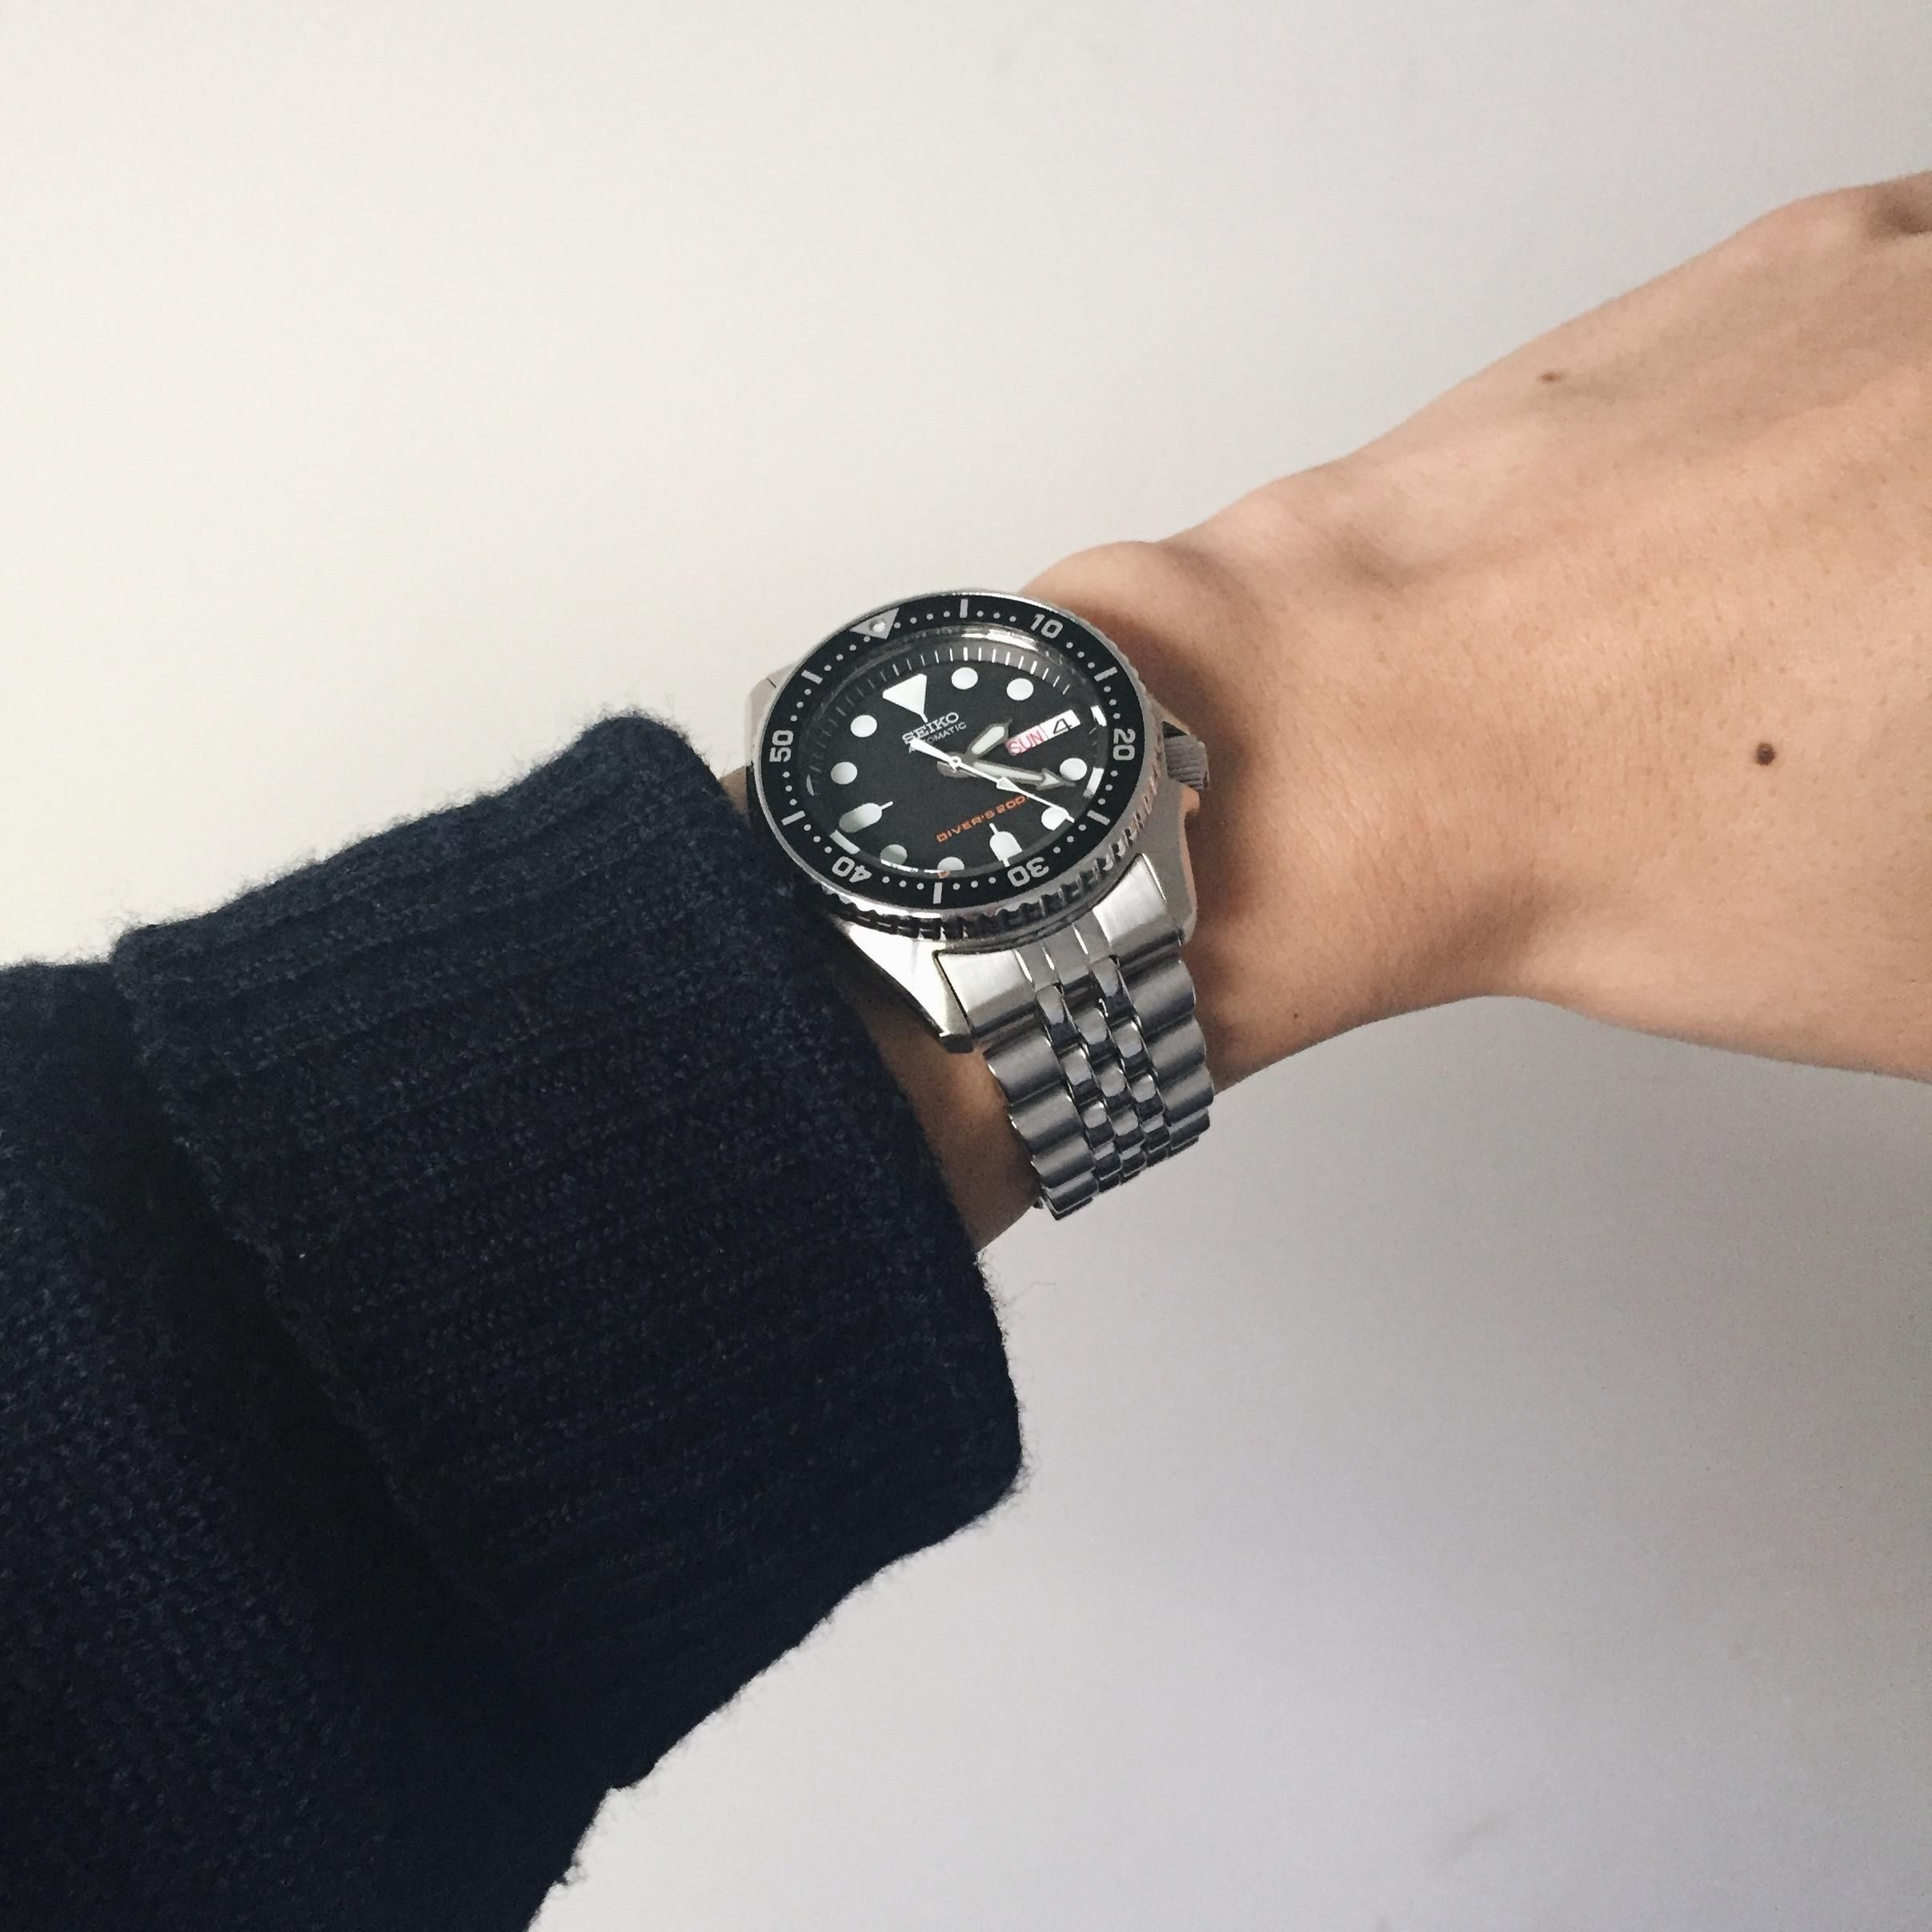 Seiko Skx013 First Dive Watch For A Small Wrist Http Ift Tt 2osg5p4 Dive Watches Watches For Men Seiko